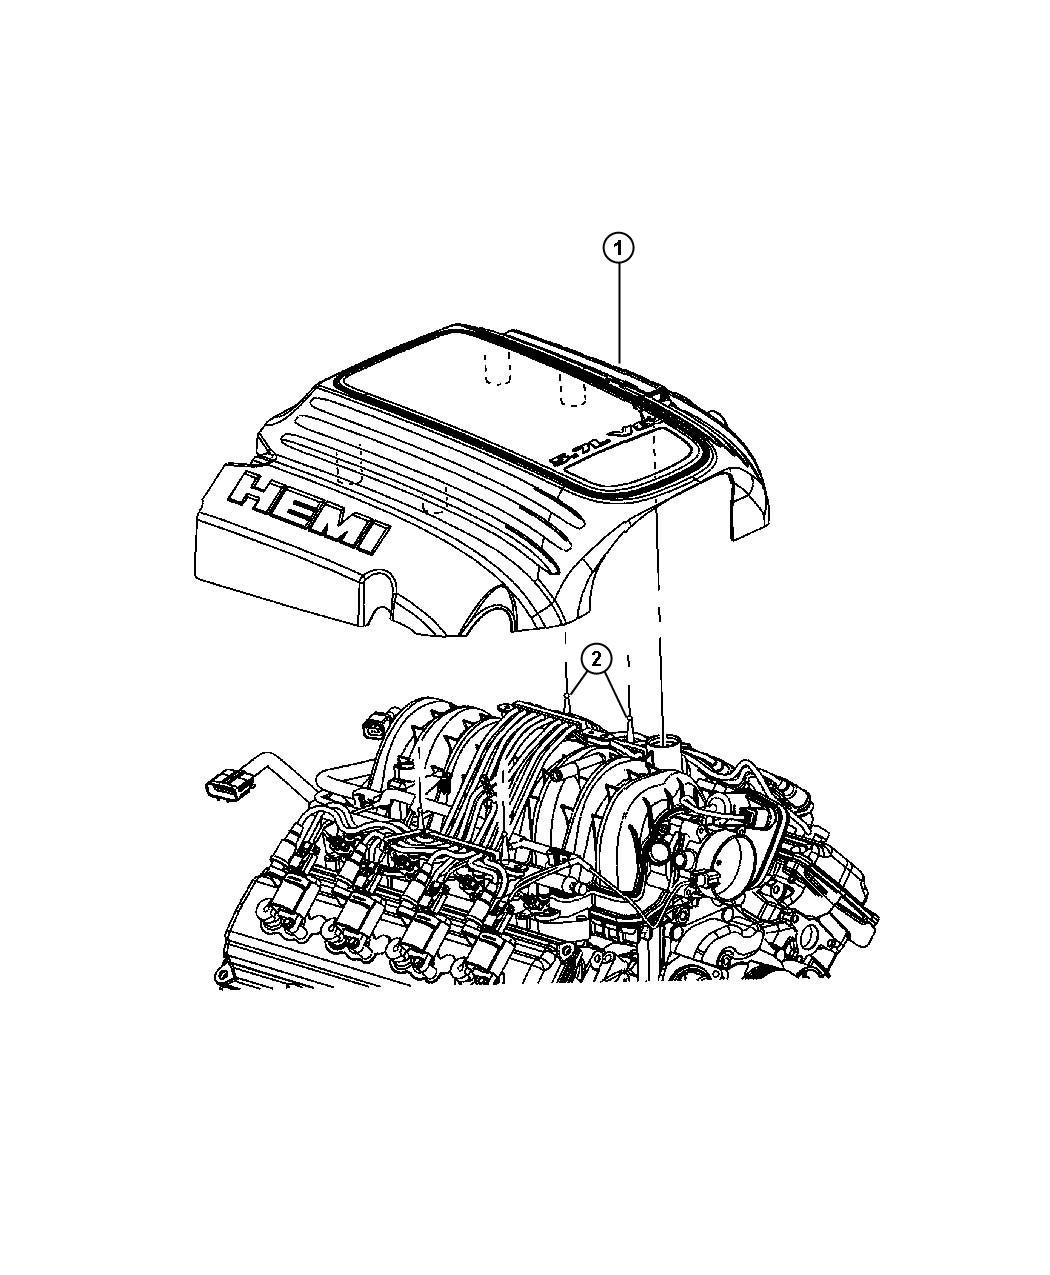 Dodge Charger Cover Engine Related Mds Cxf